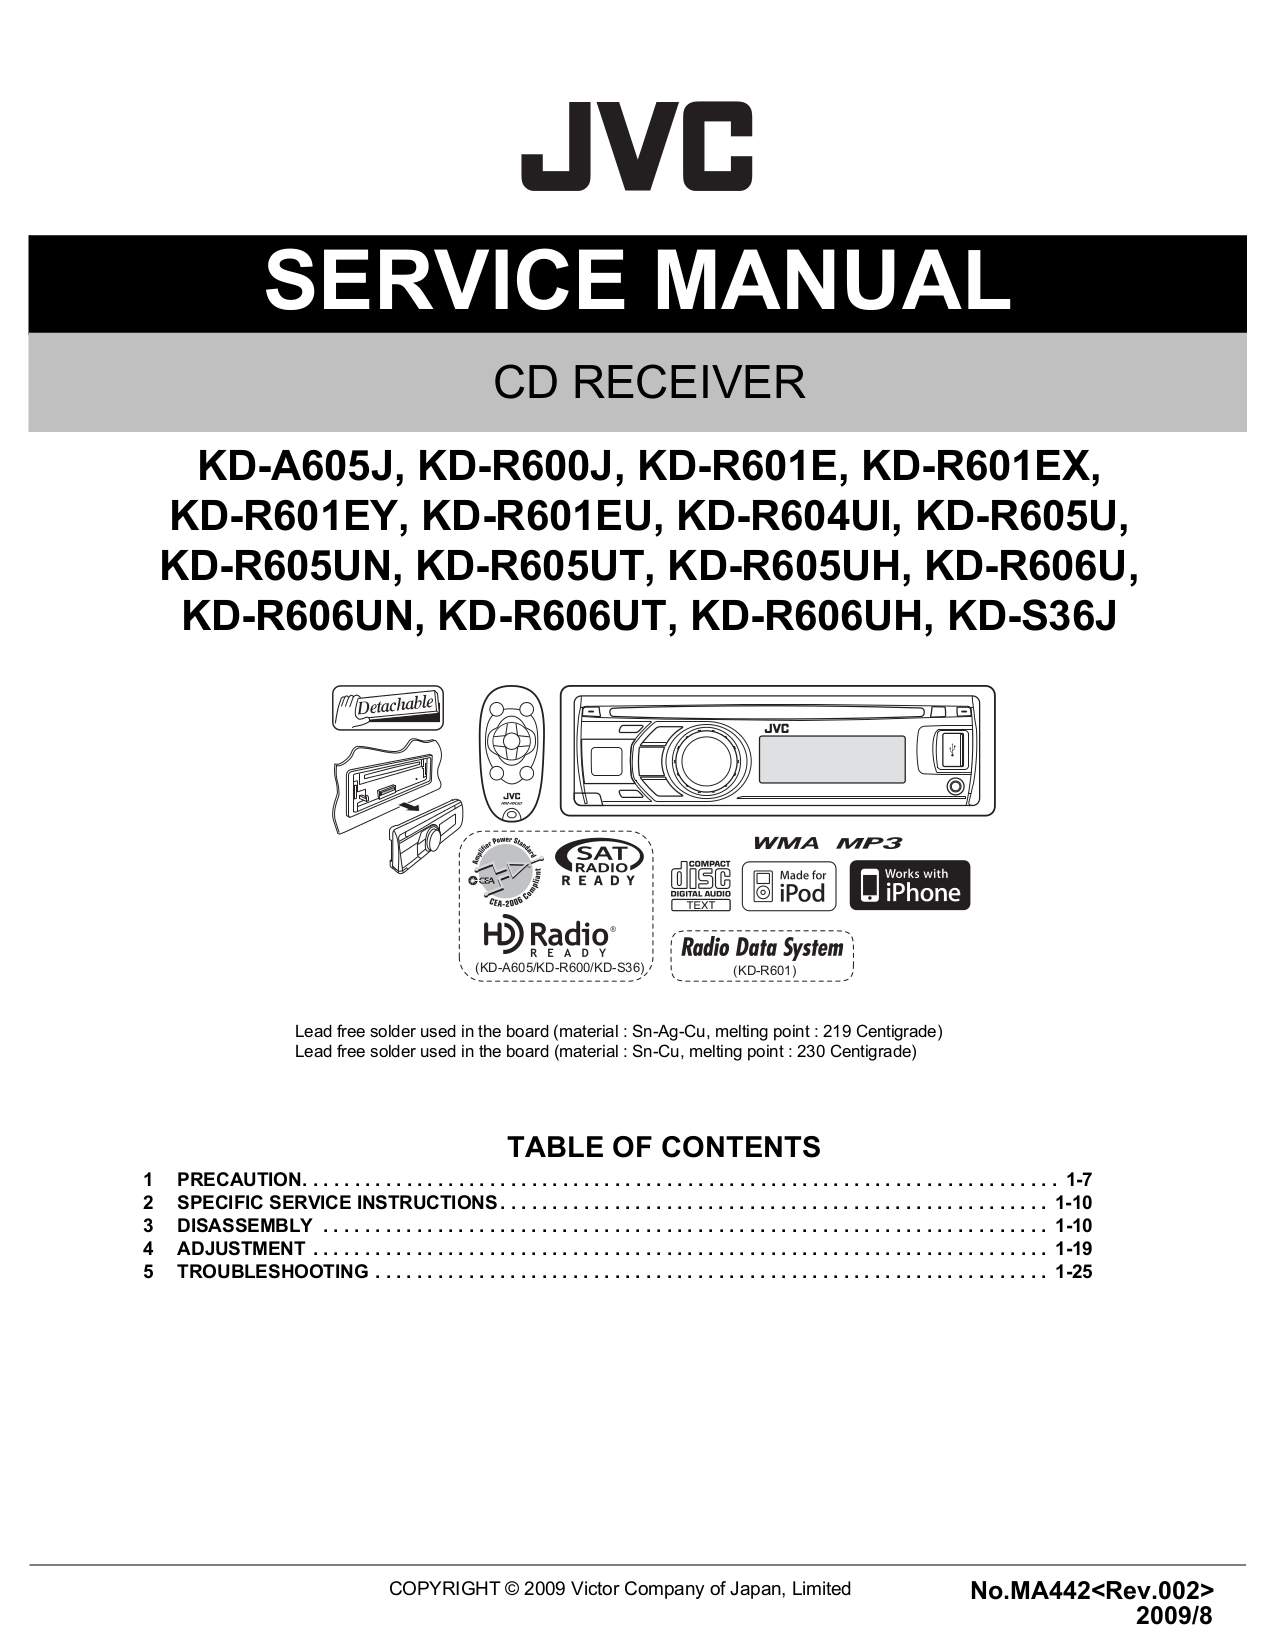 JVC_KD A605_R600_R601_R604_R605_R606_S36.pdf 0 pdf manual for jvc car receiver kd r600 jvc kd r650 wiring diagram at panicattacktreatment.co